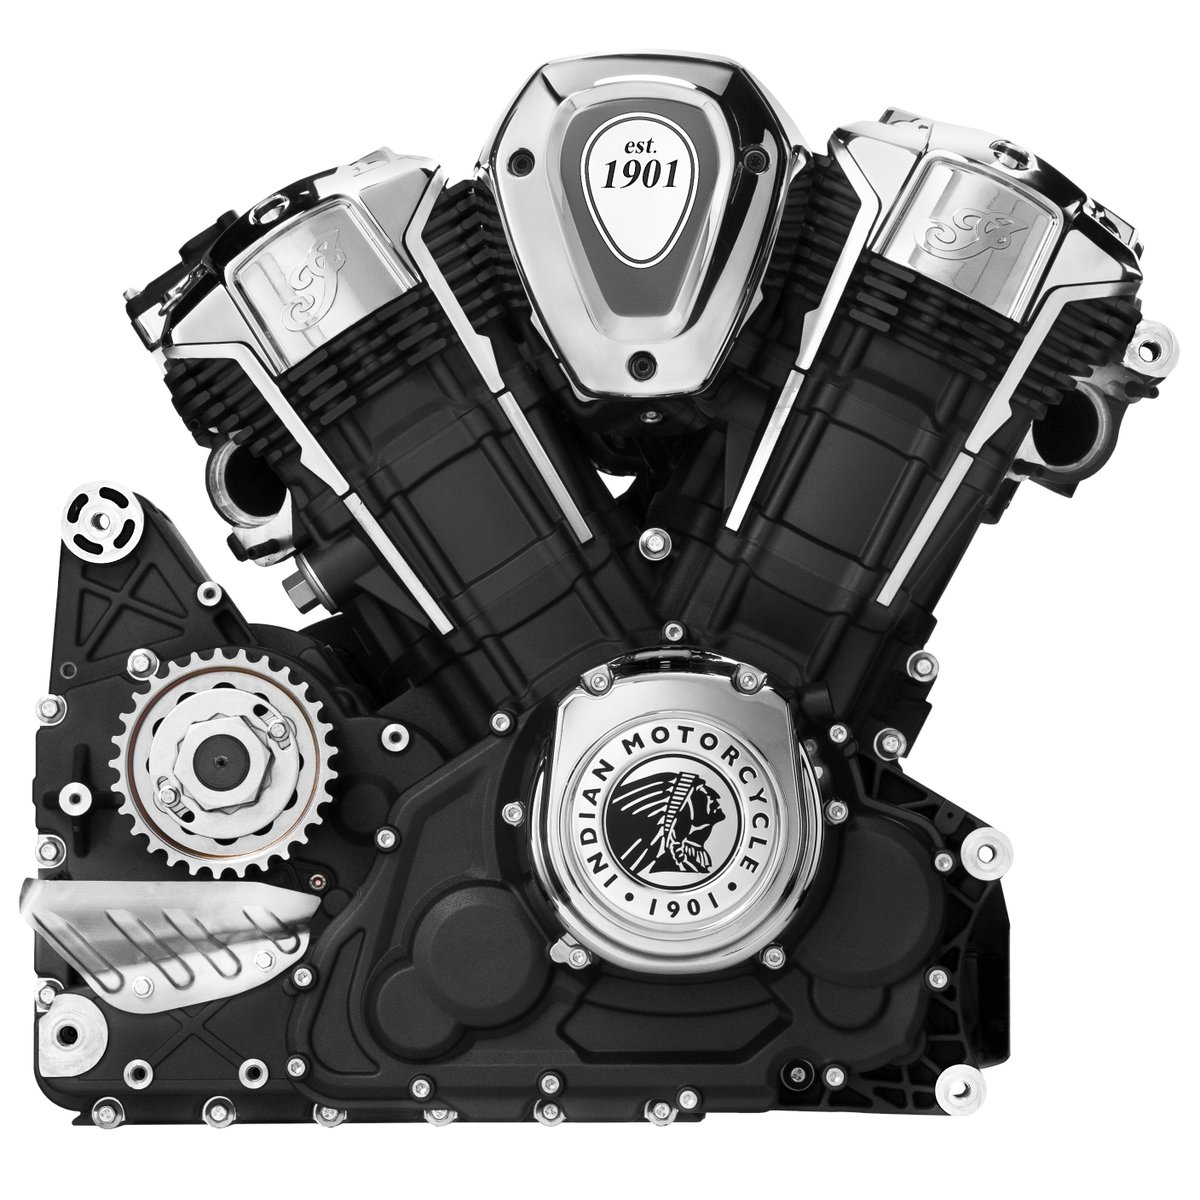 Press Release: Indian Motorcycle Delivers Most Powerful Engine In Its Class With New PowerPlus – A New Level Of V-Twin Performance From America's First Motorcycle Company https://t.co/DiXi83Oqxa https://t.co/MrzzZfHoXn